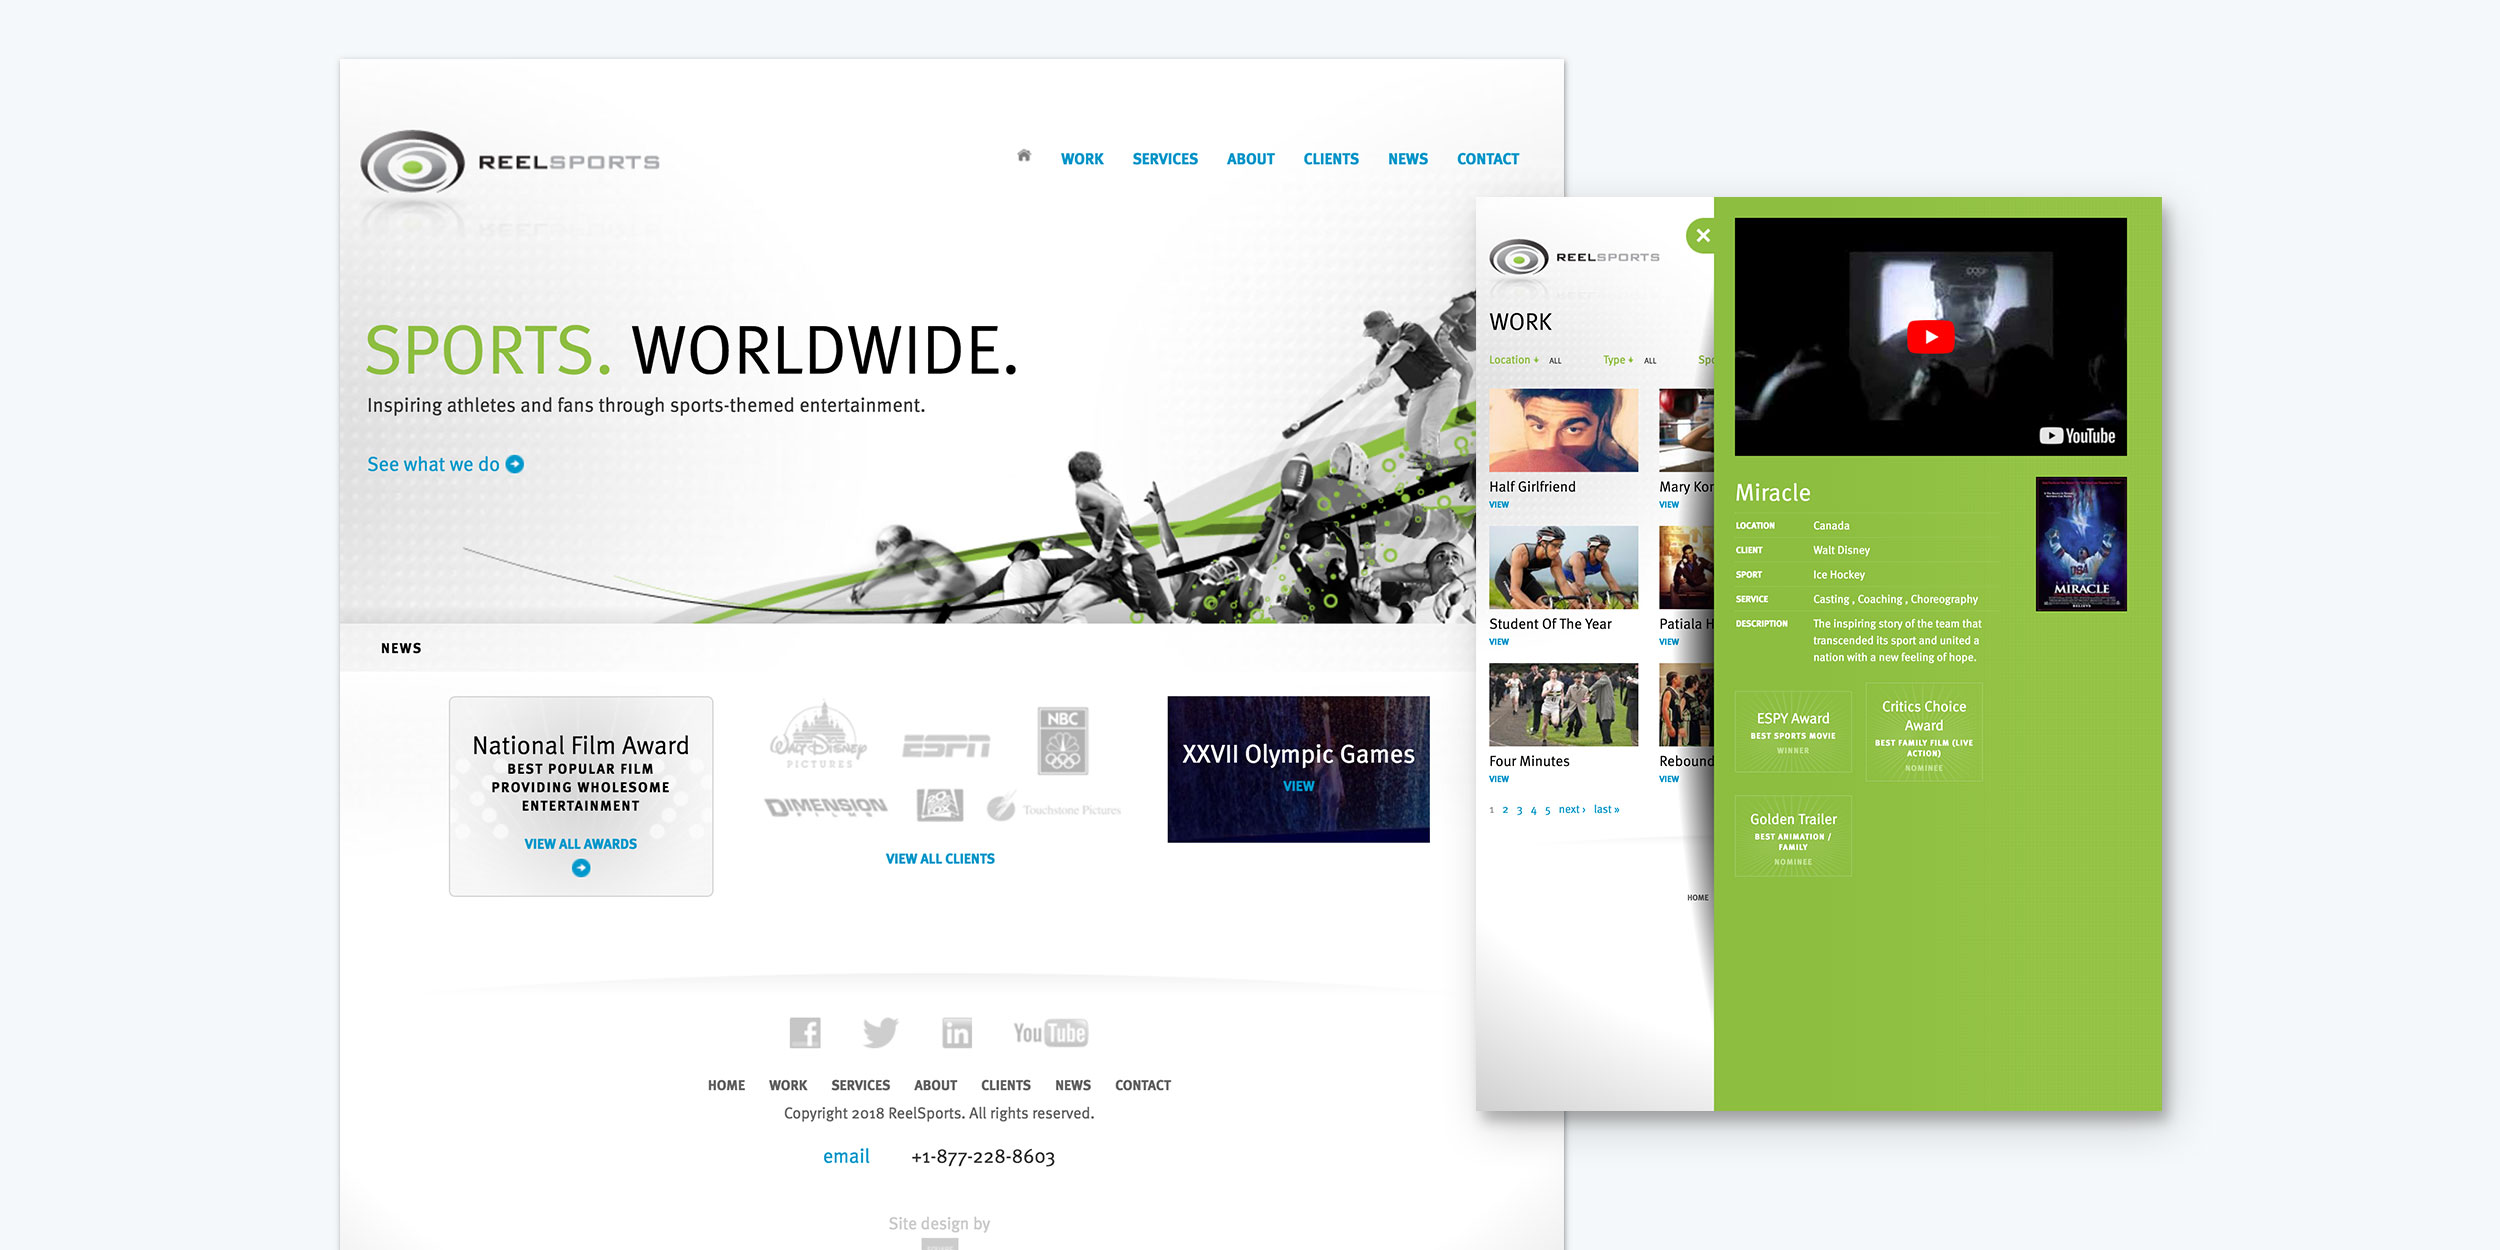 ReelSports website design